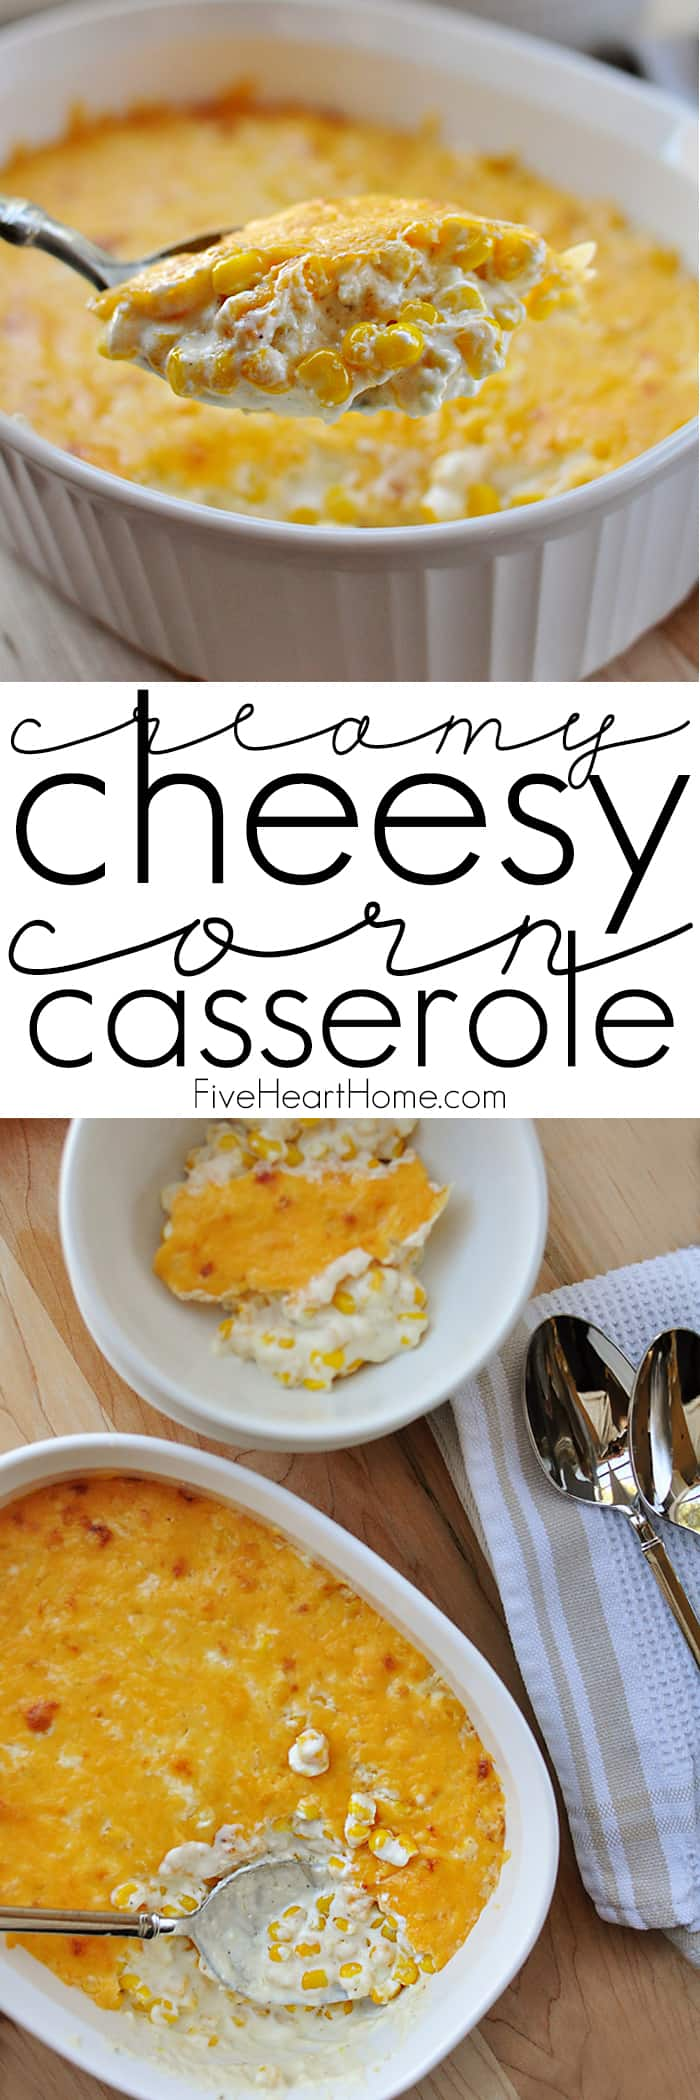 Creamy Cheesy Corn Casserole ~ decadent with cream cheese and cheddar, this corn is perfect as a holiday side dish and can even be made in the crock pot! | FiveHeartHome.com